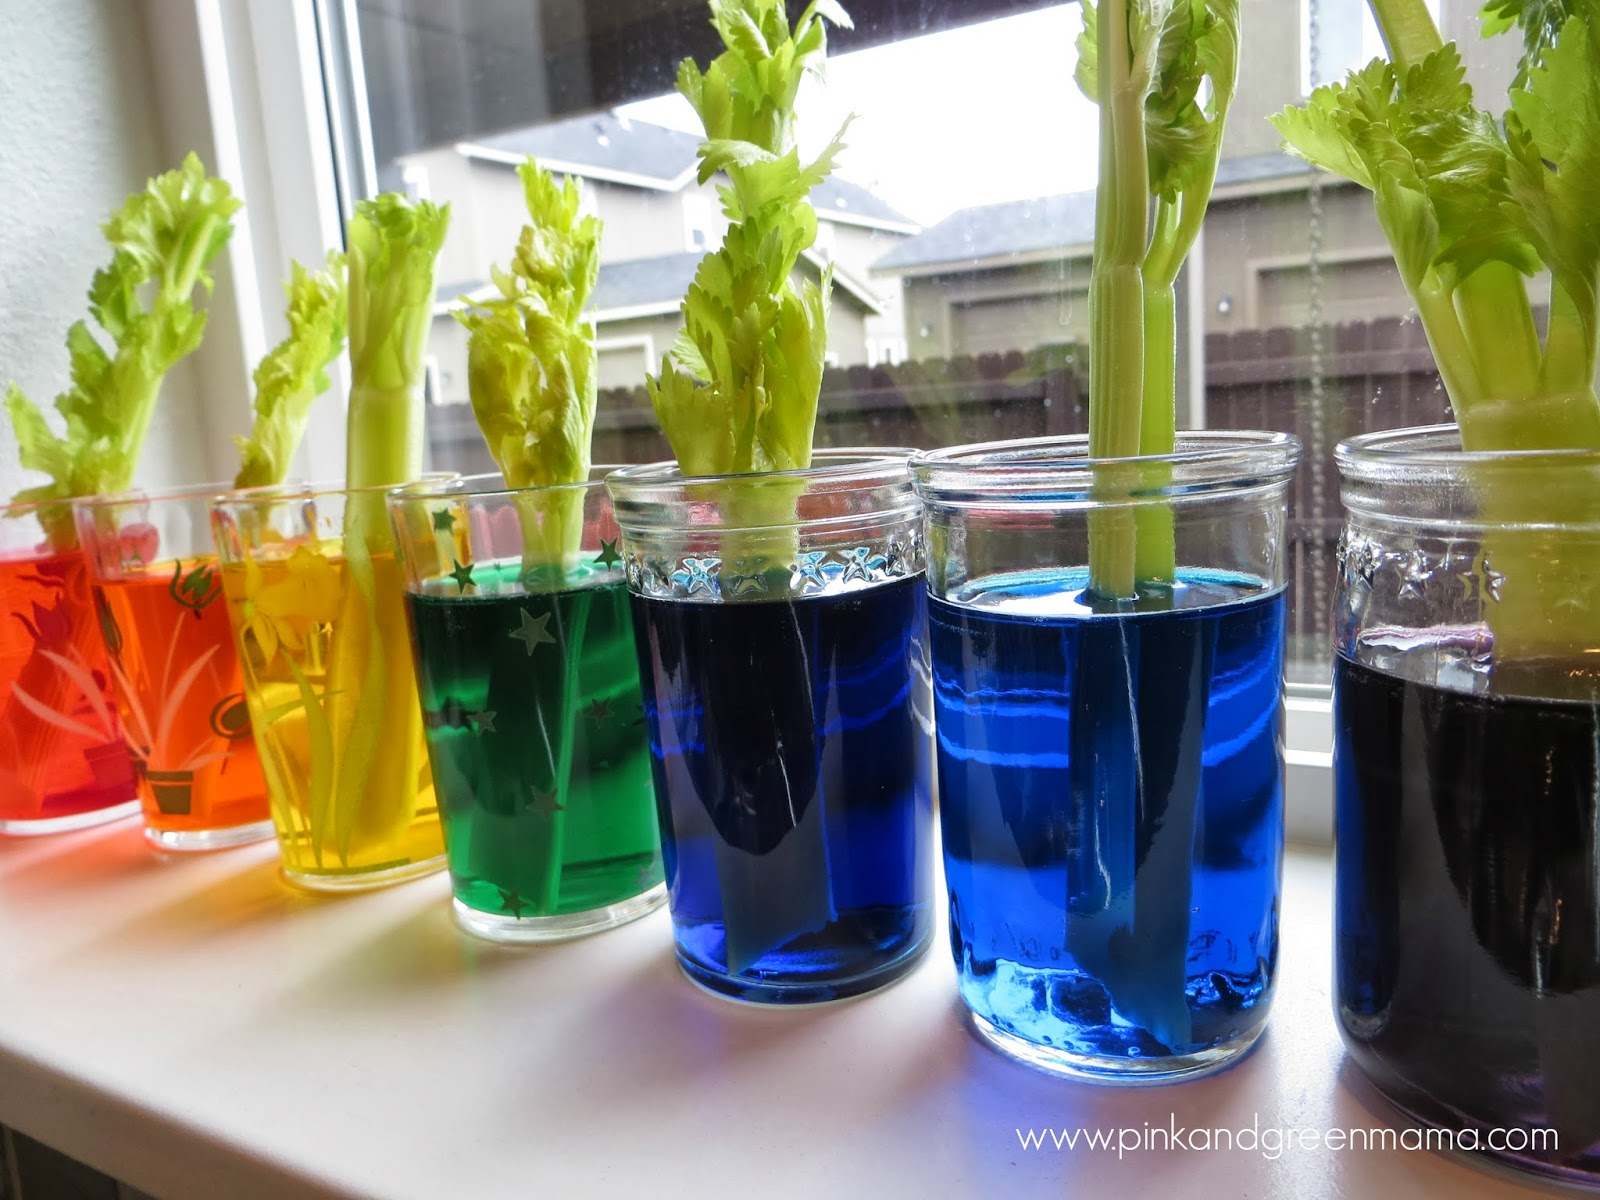 Pink and Green Mama: Kitchen Counter Science with Kids: Rainbow ...